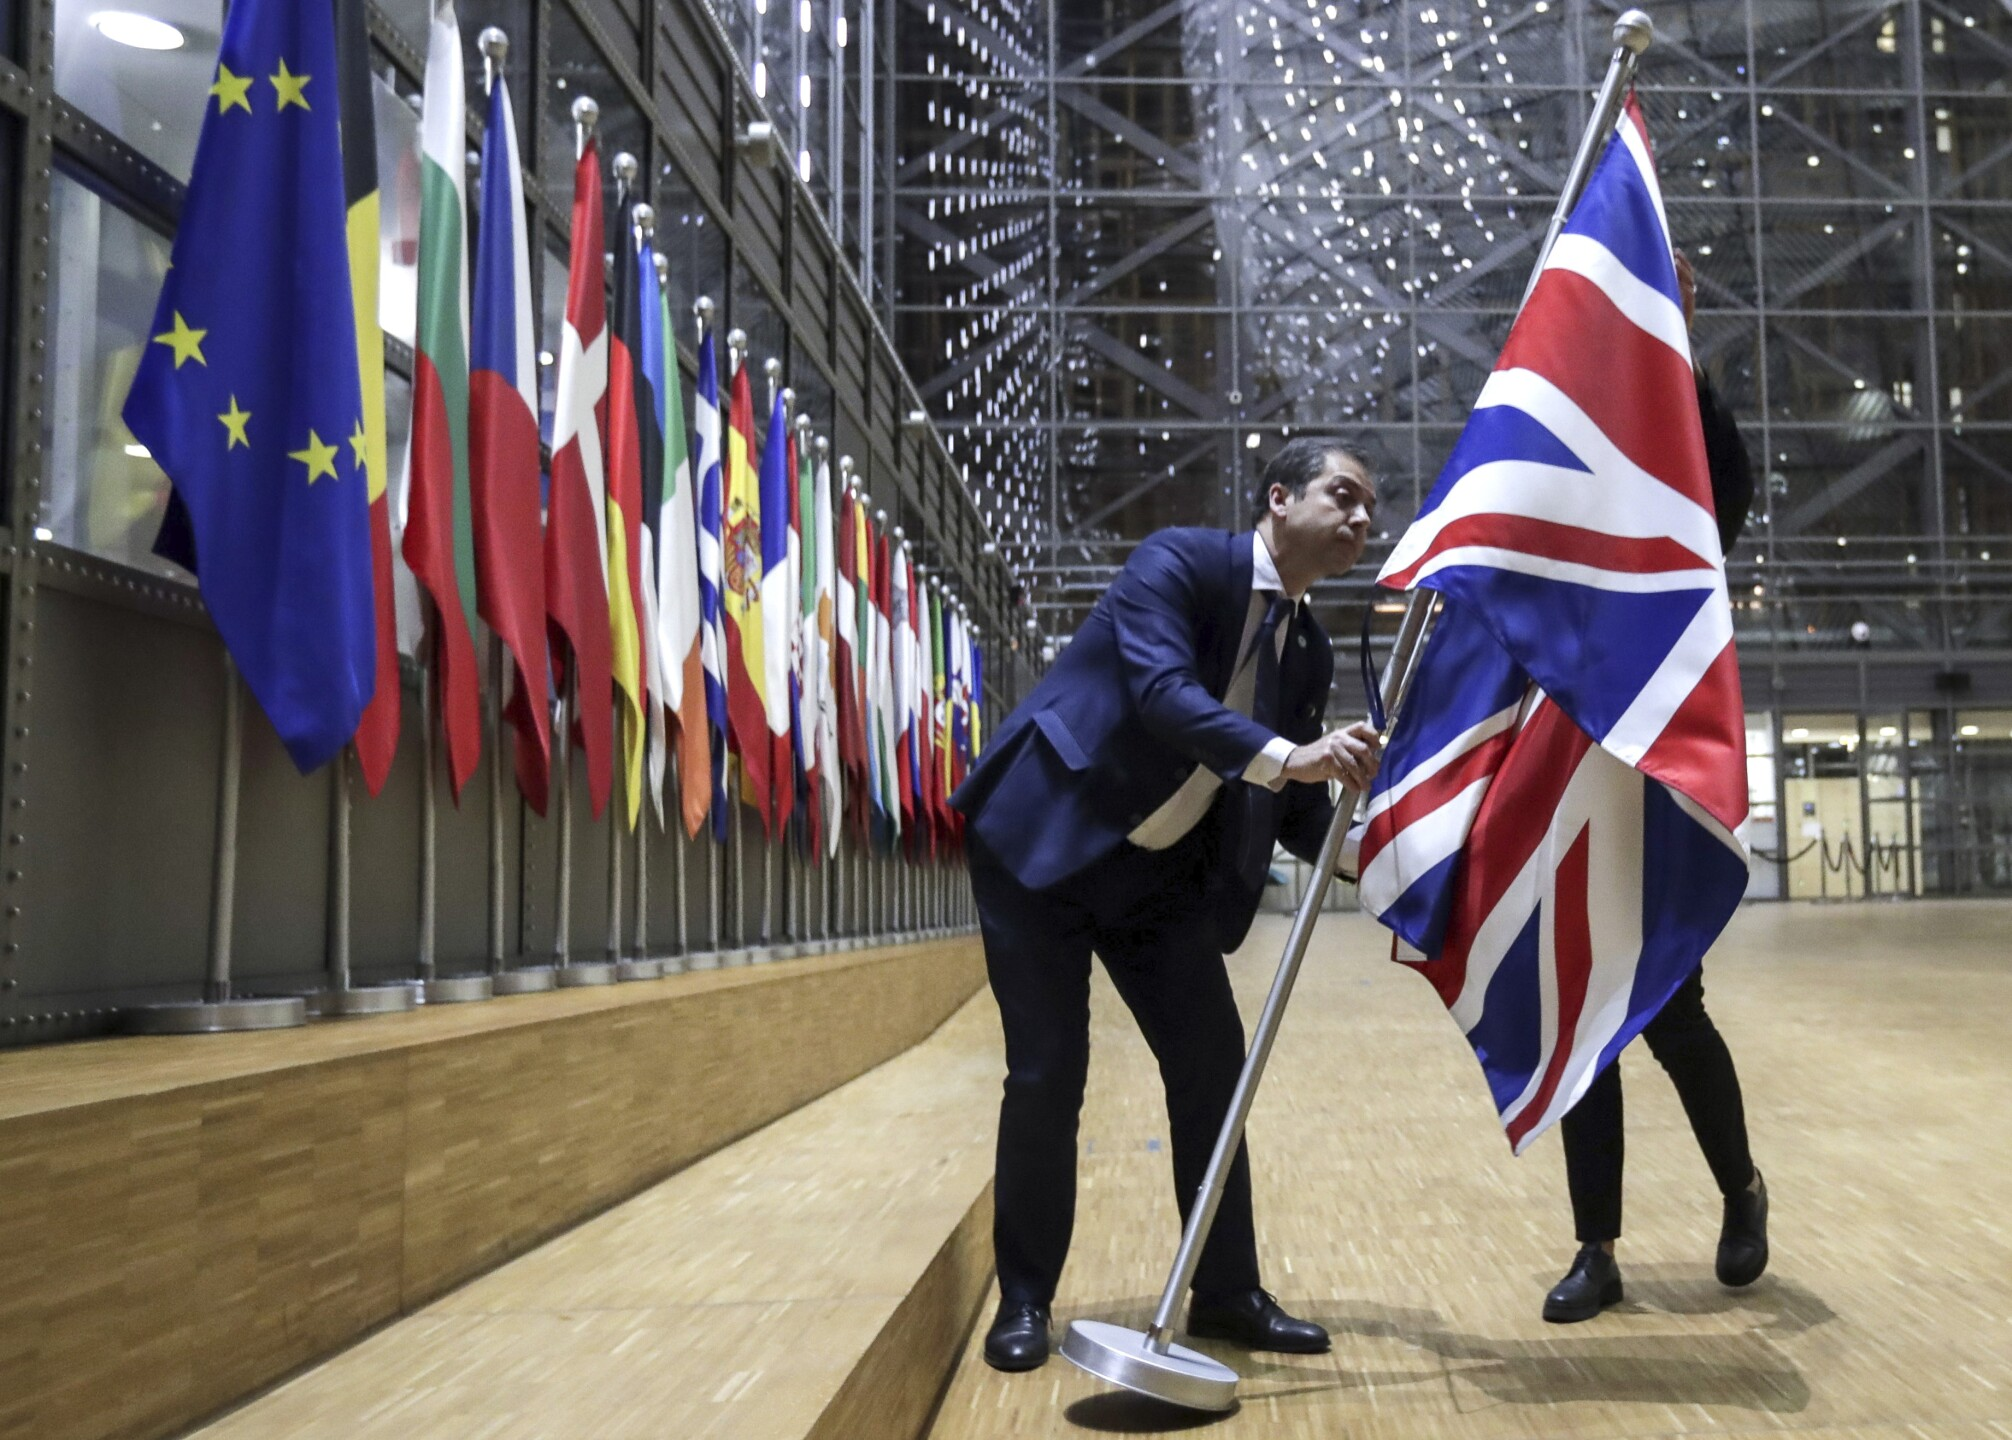 Photos: Britain leaves the European Union, leaps into the unknown